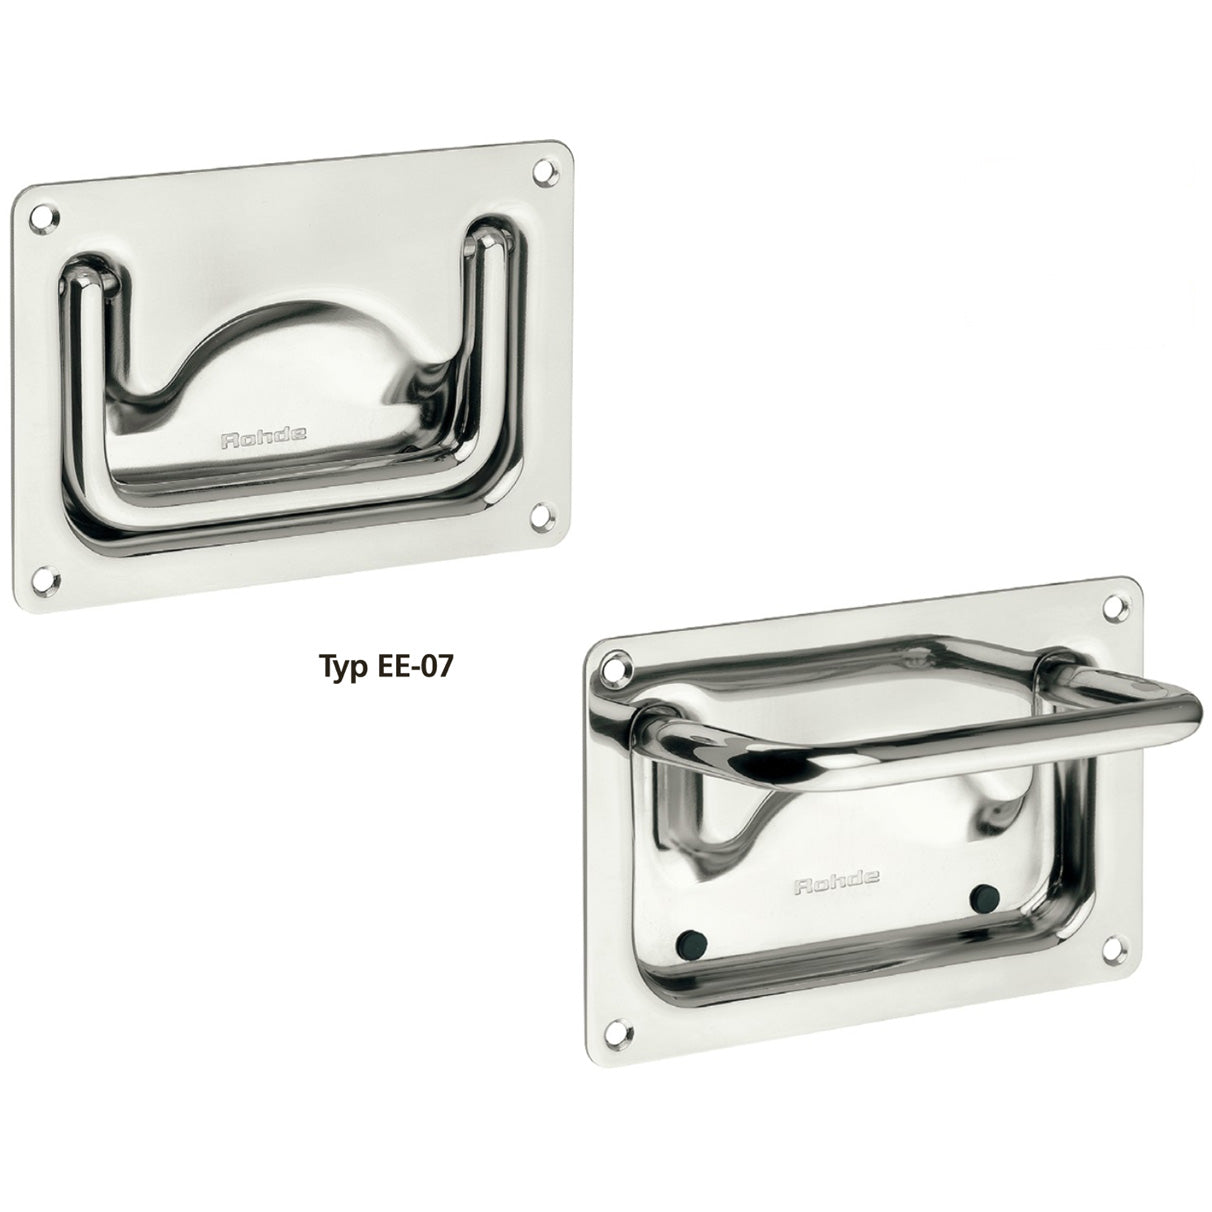 Tray / Recessed Handle Stainless Steel - EE07